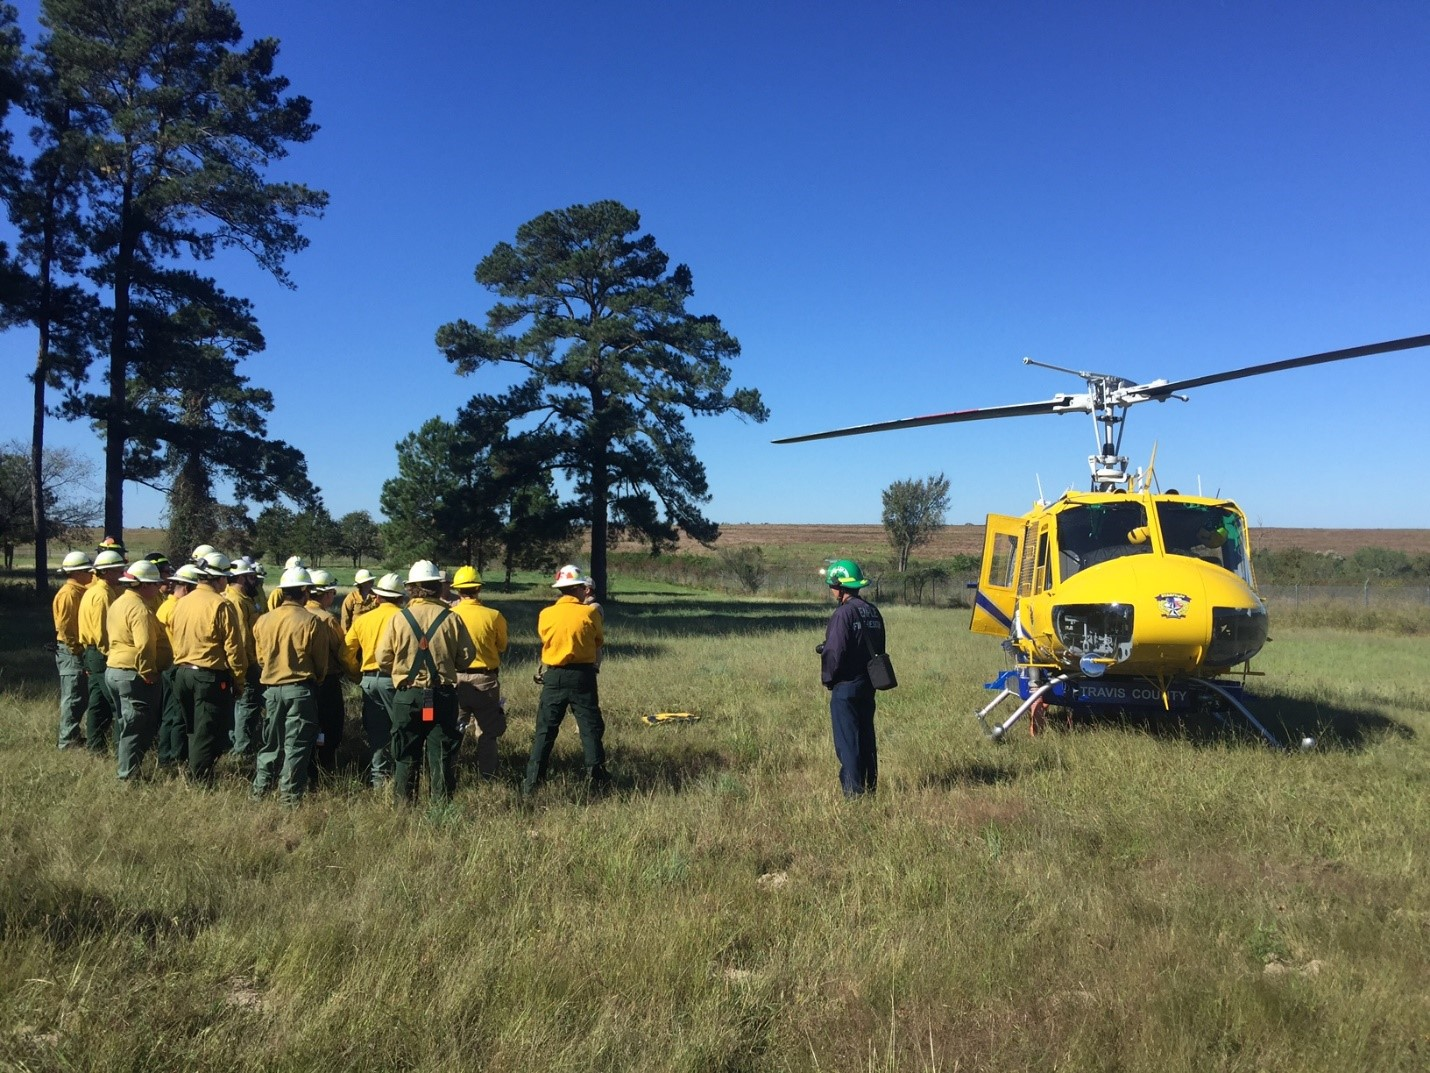 Wildland firefighters from around the country to attend wildfire academy in Bastrop